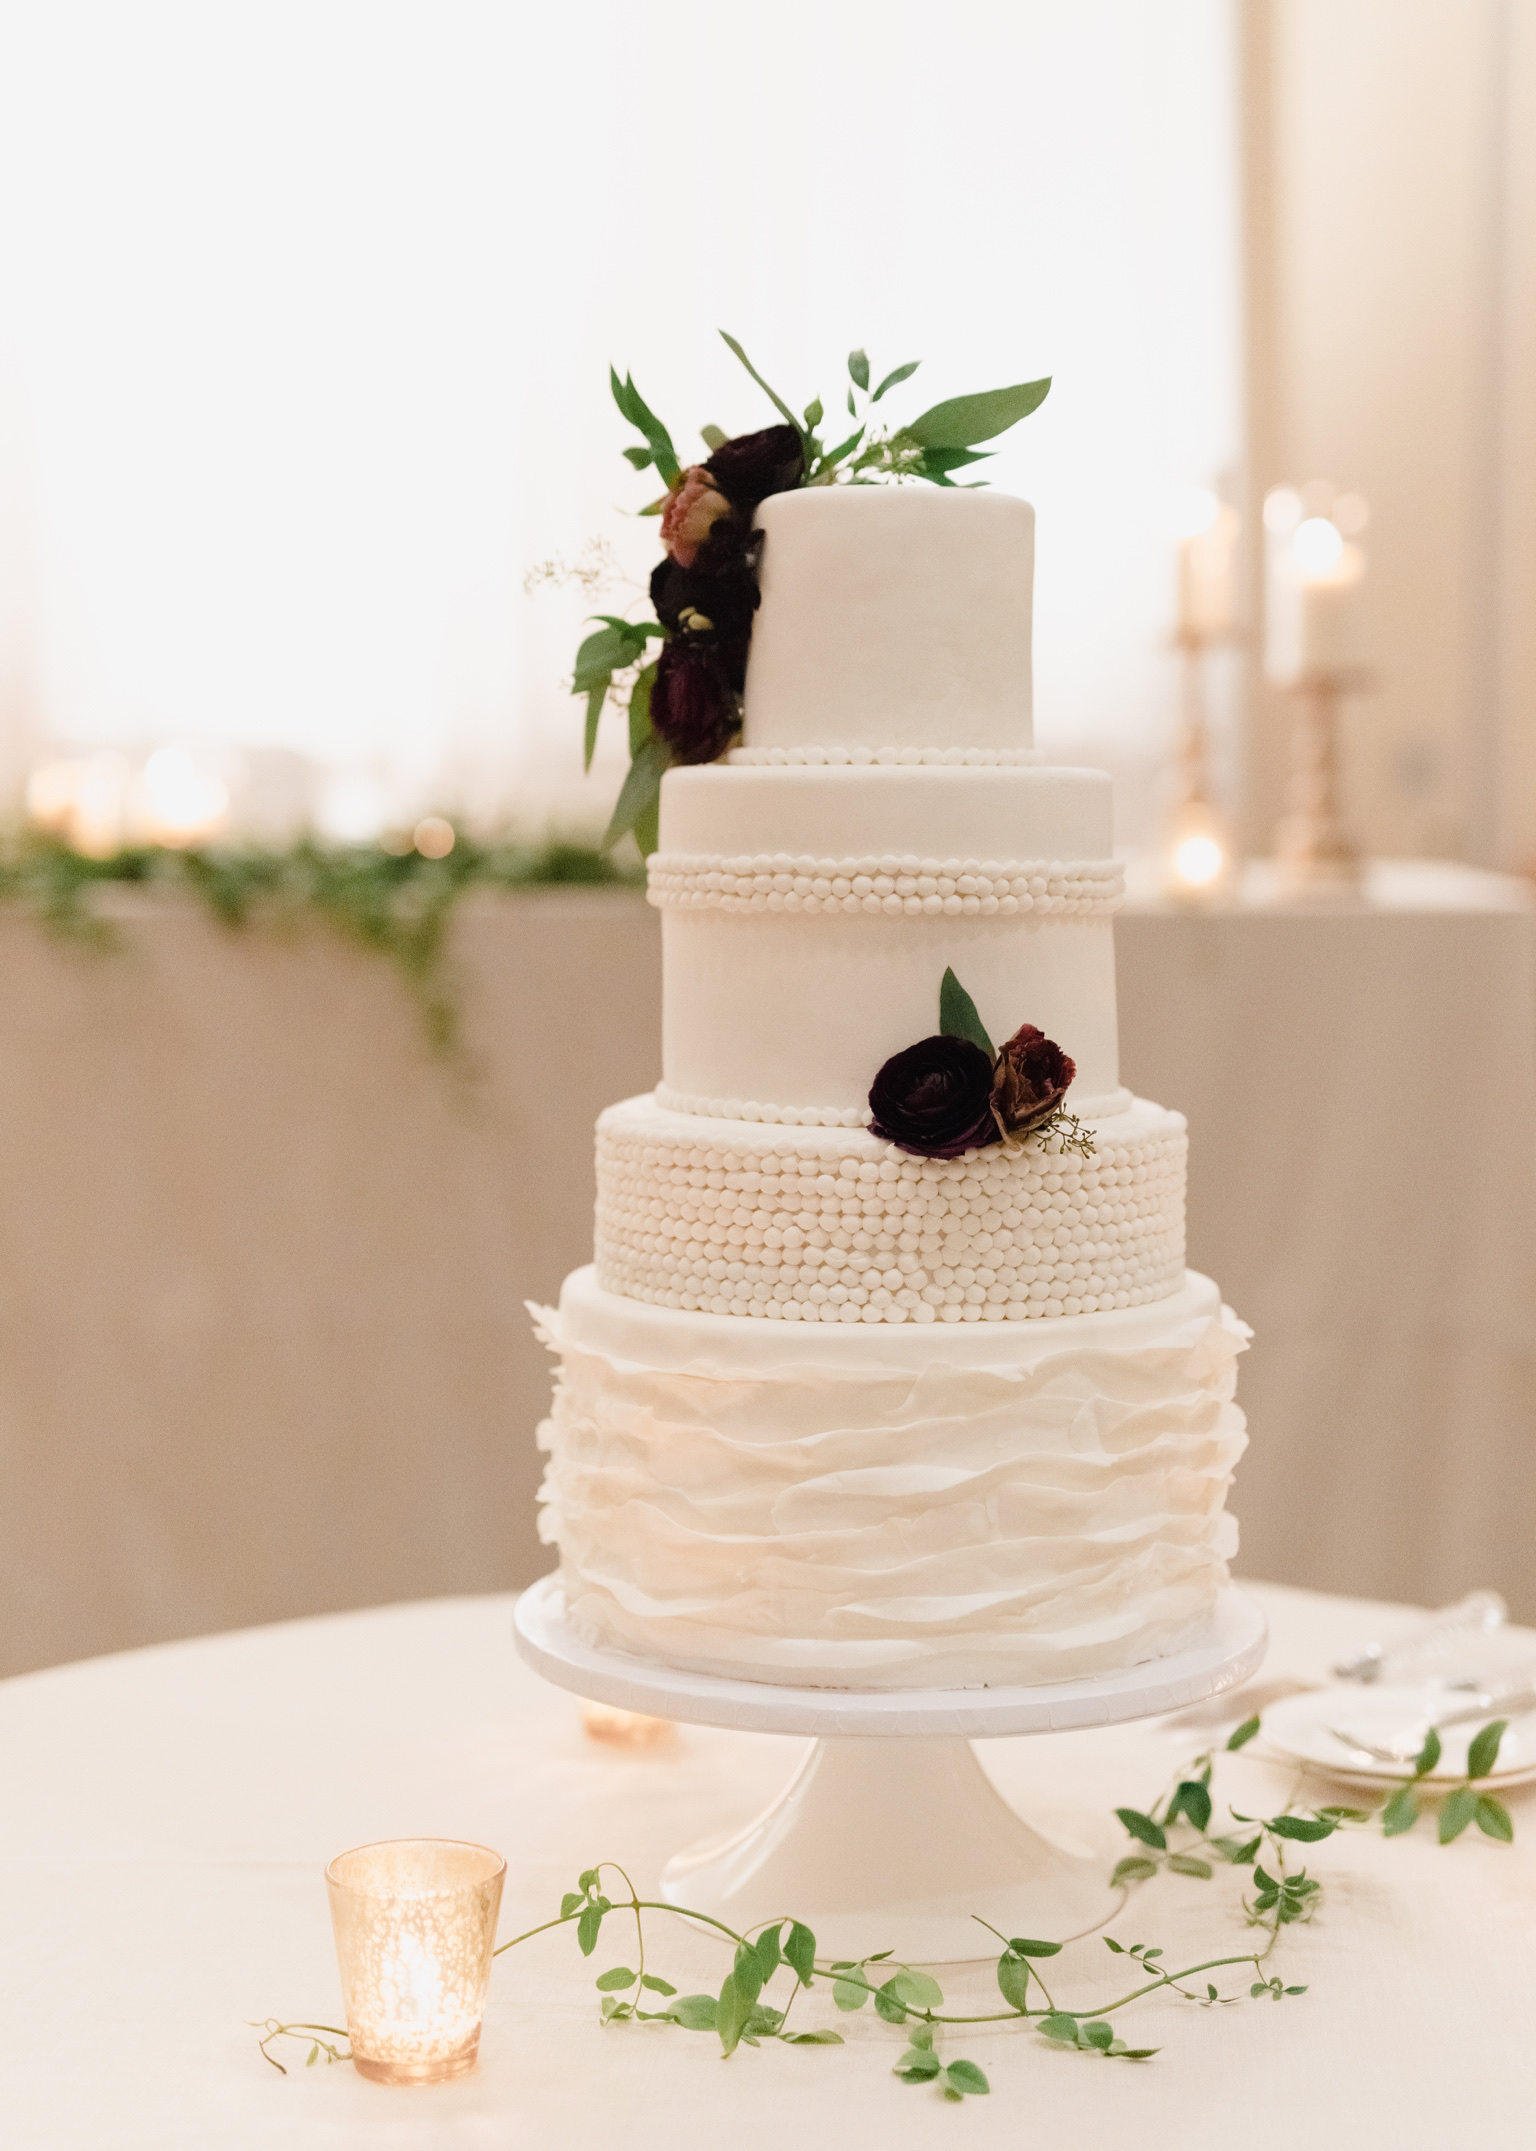 Lina's Wedding Cake